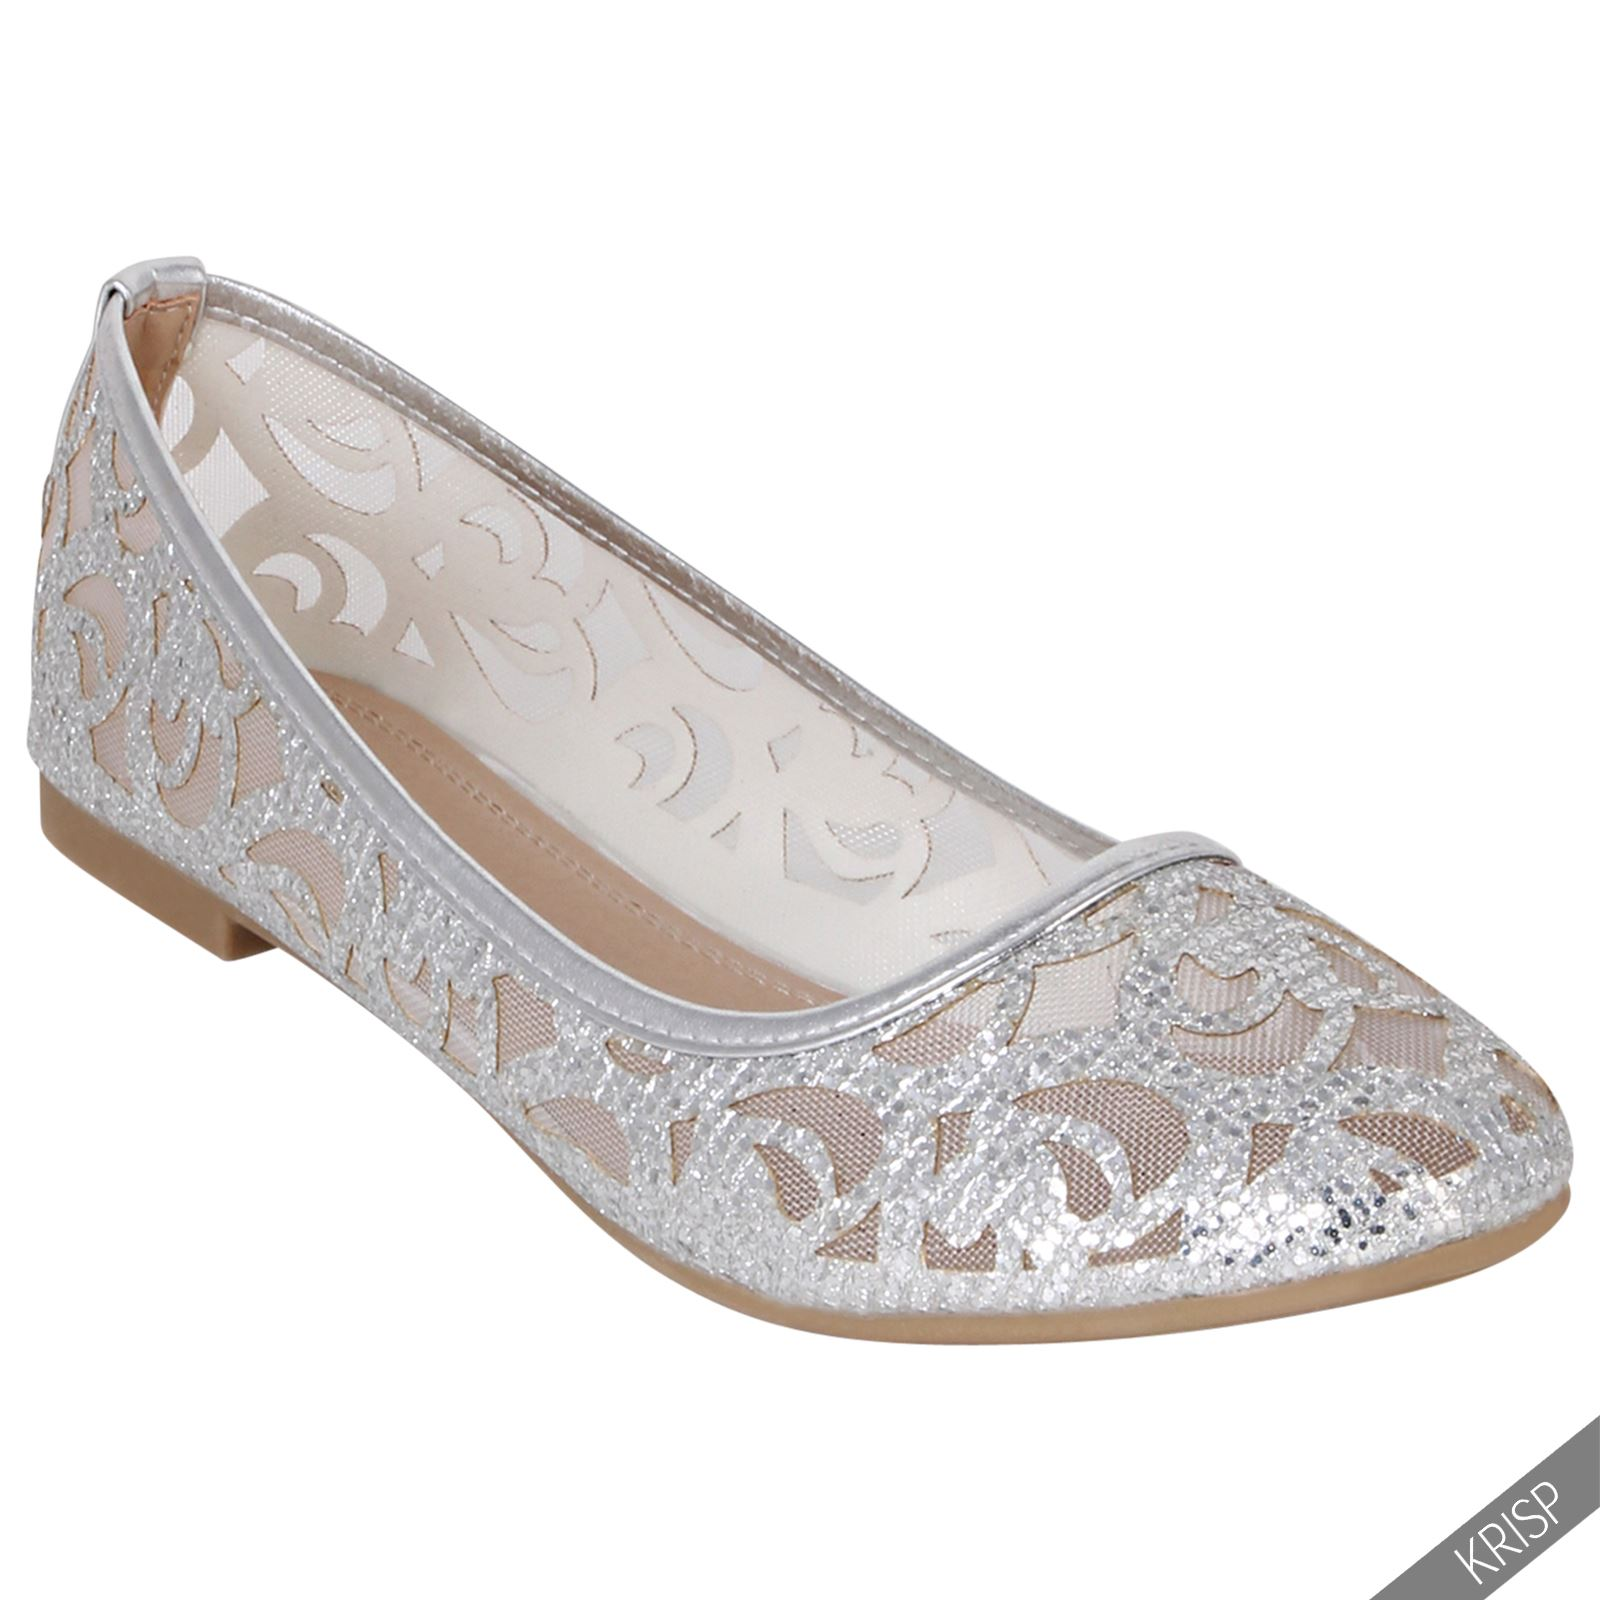 The A2 by Aerosoles Payout ballet flats are a casual shoe that puts adorable on the map. They feature double elasticized straps that unite form with function and have a .